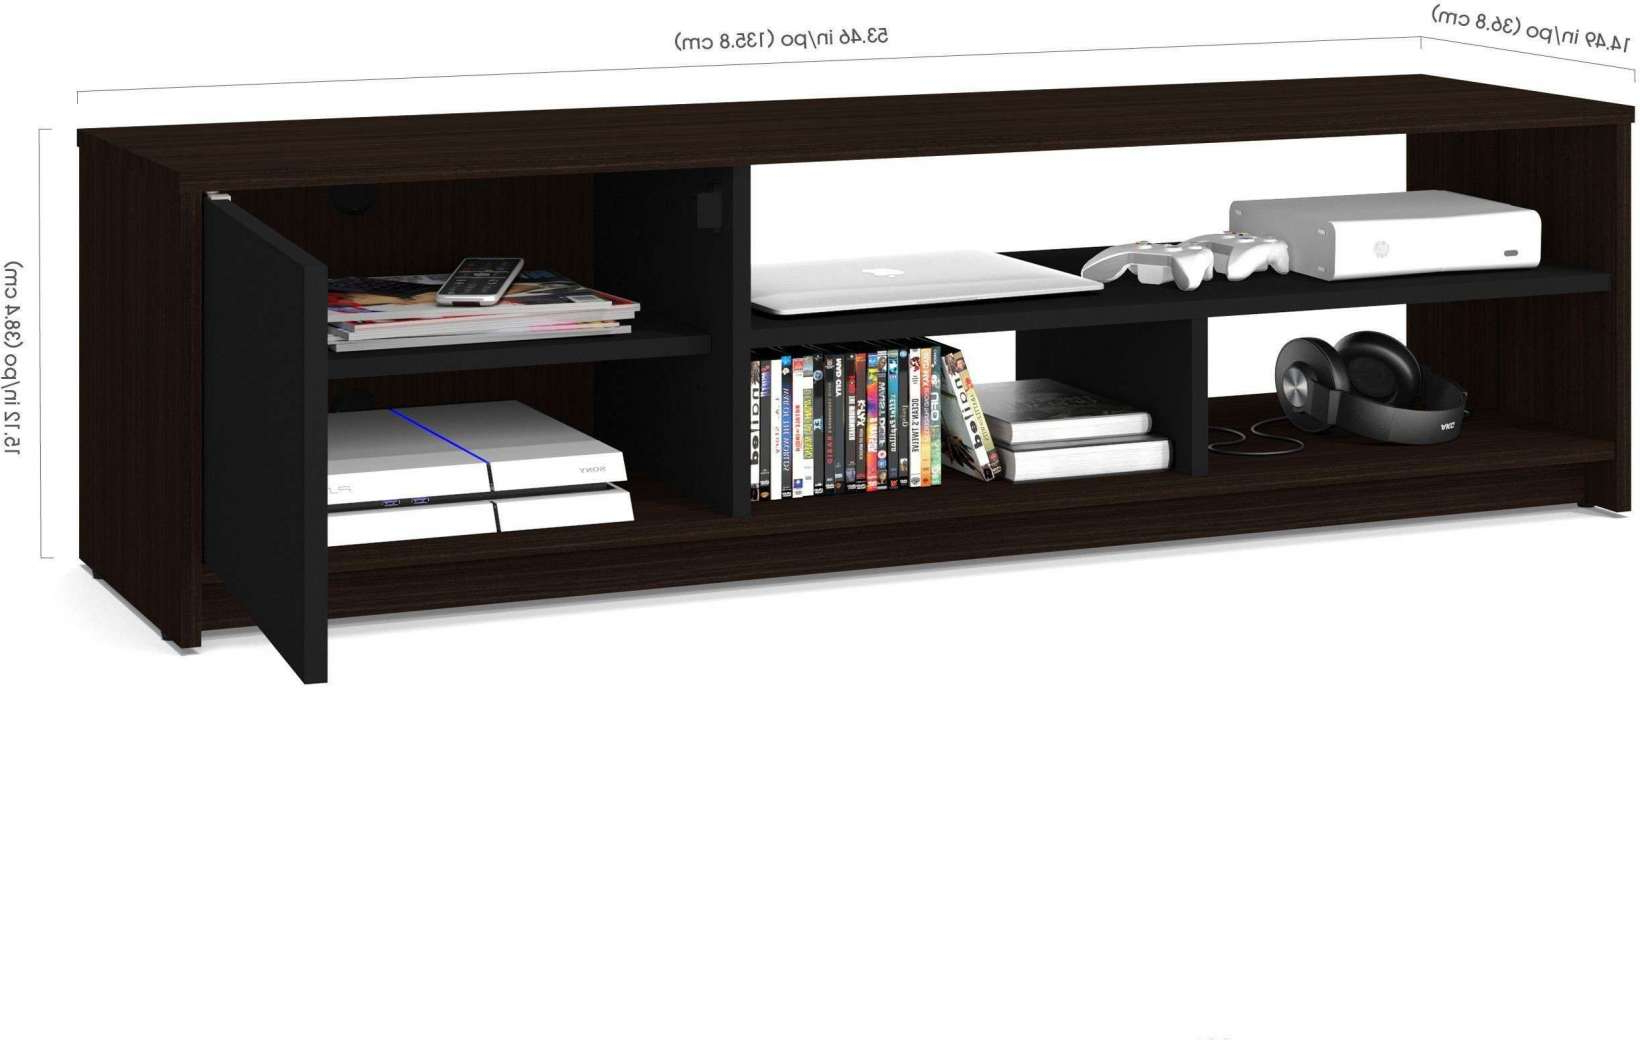 Most Recent Tv Stand Coffee Table Sets With Regard To Creative Tv Stands Plus Fresh 10 Tv Stand Coffee Table End Table Set (Gallery 18 of 20)